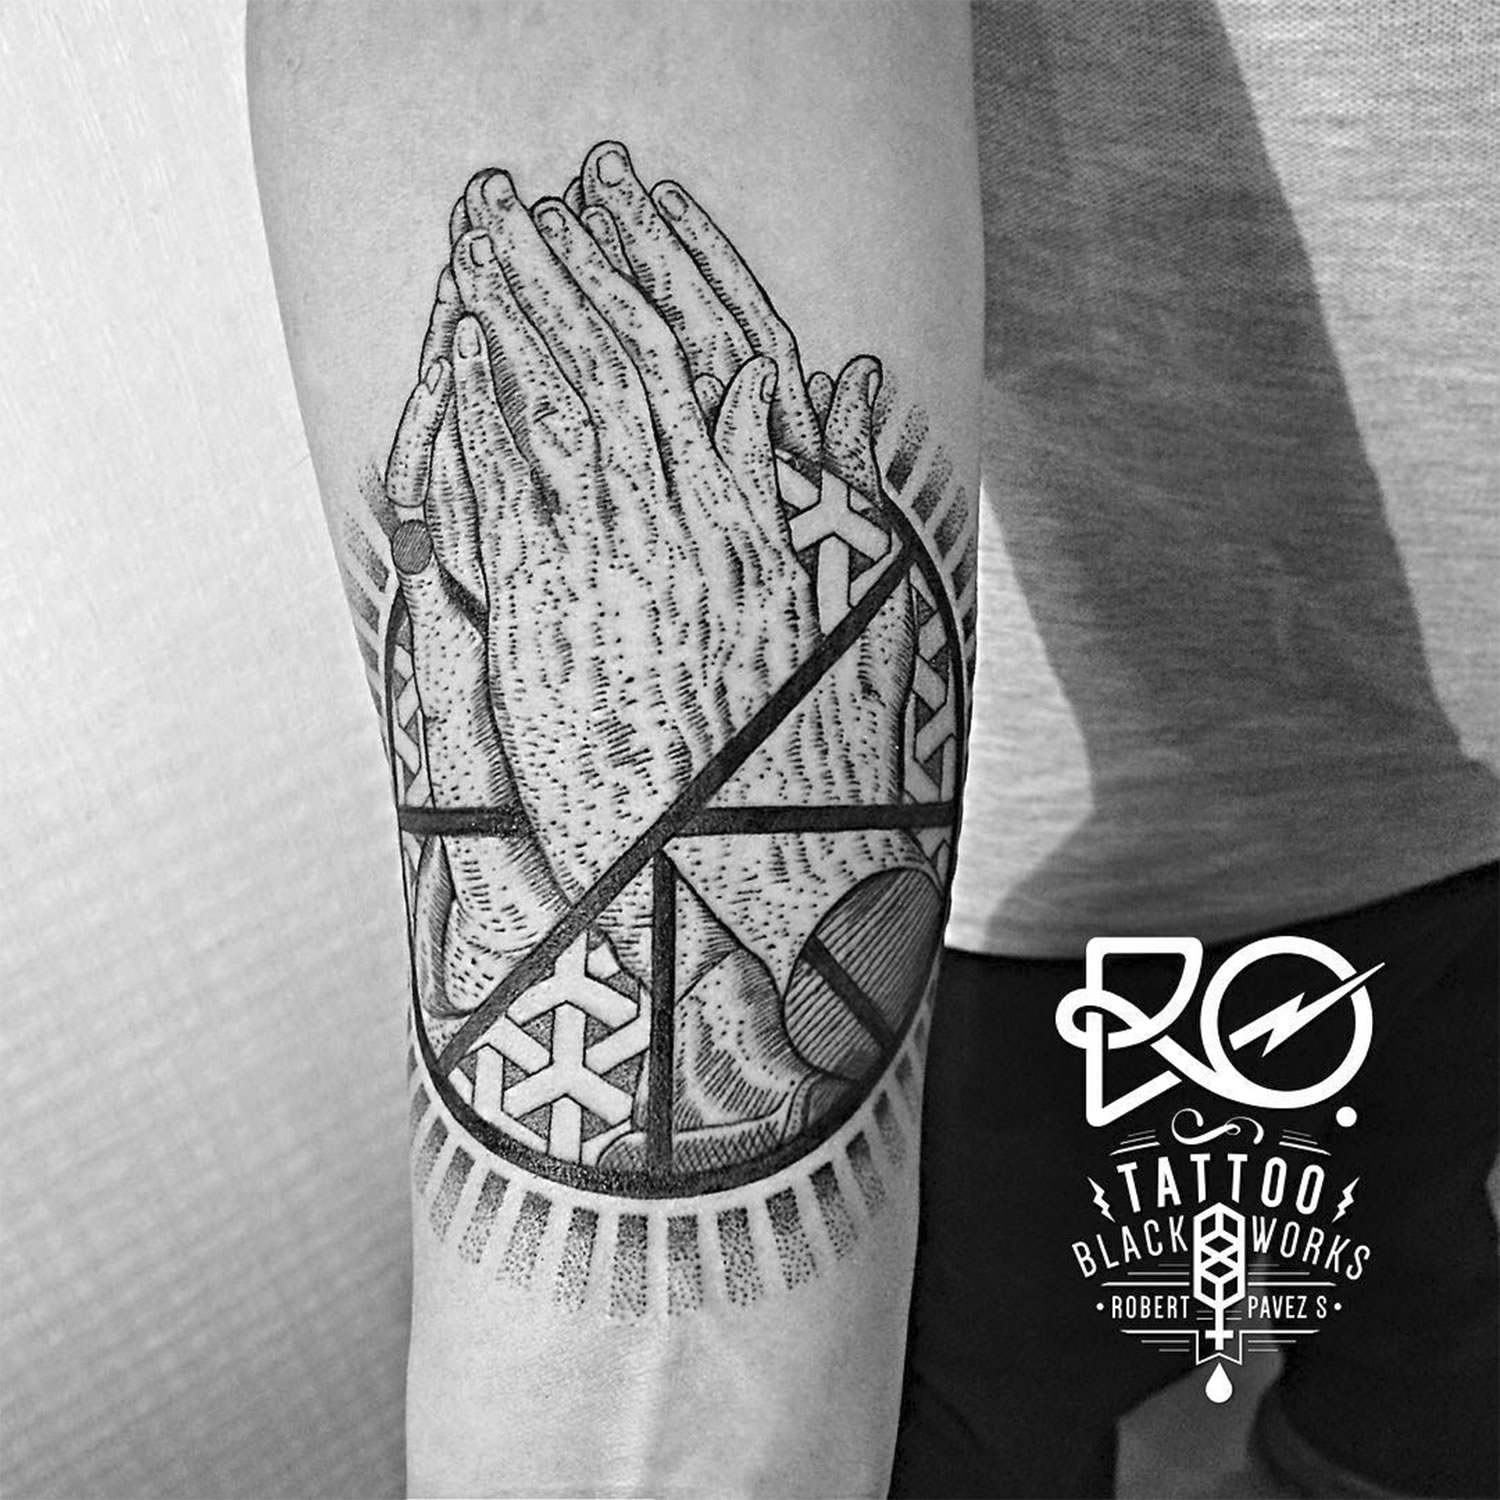 praying hands (inspired by durer) tattoo by robert pavez